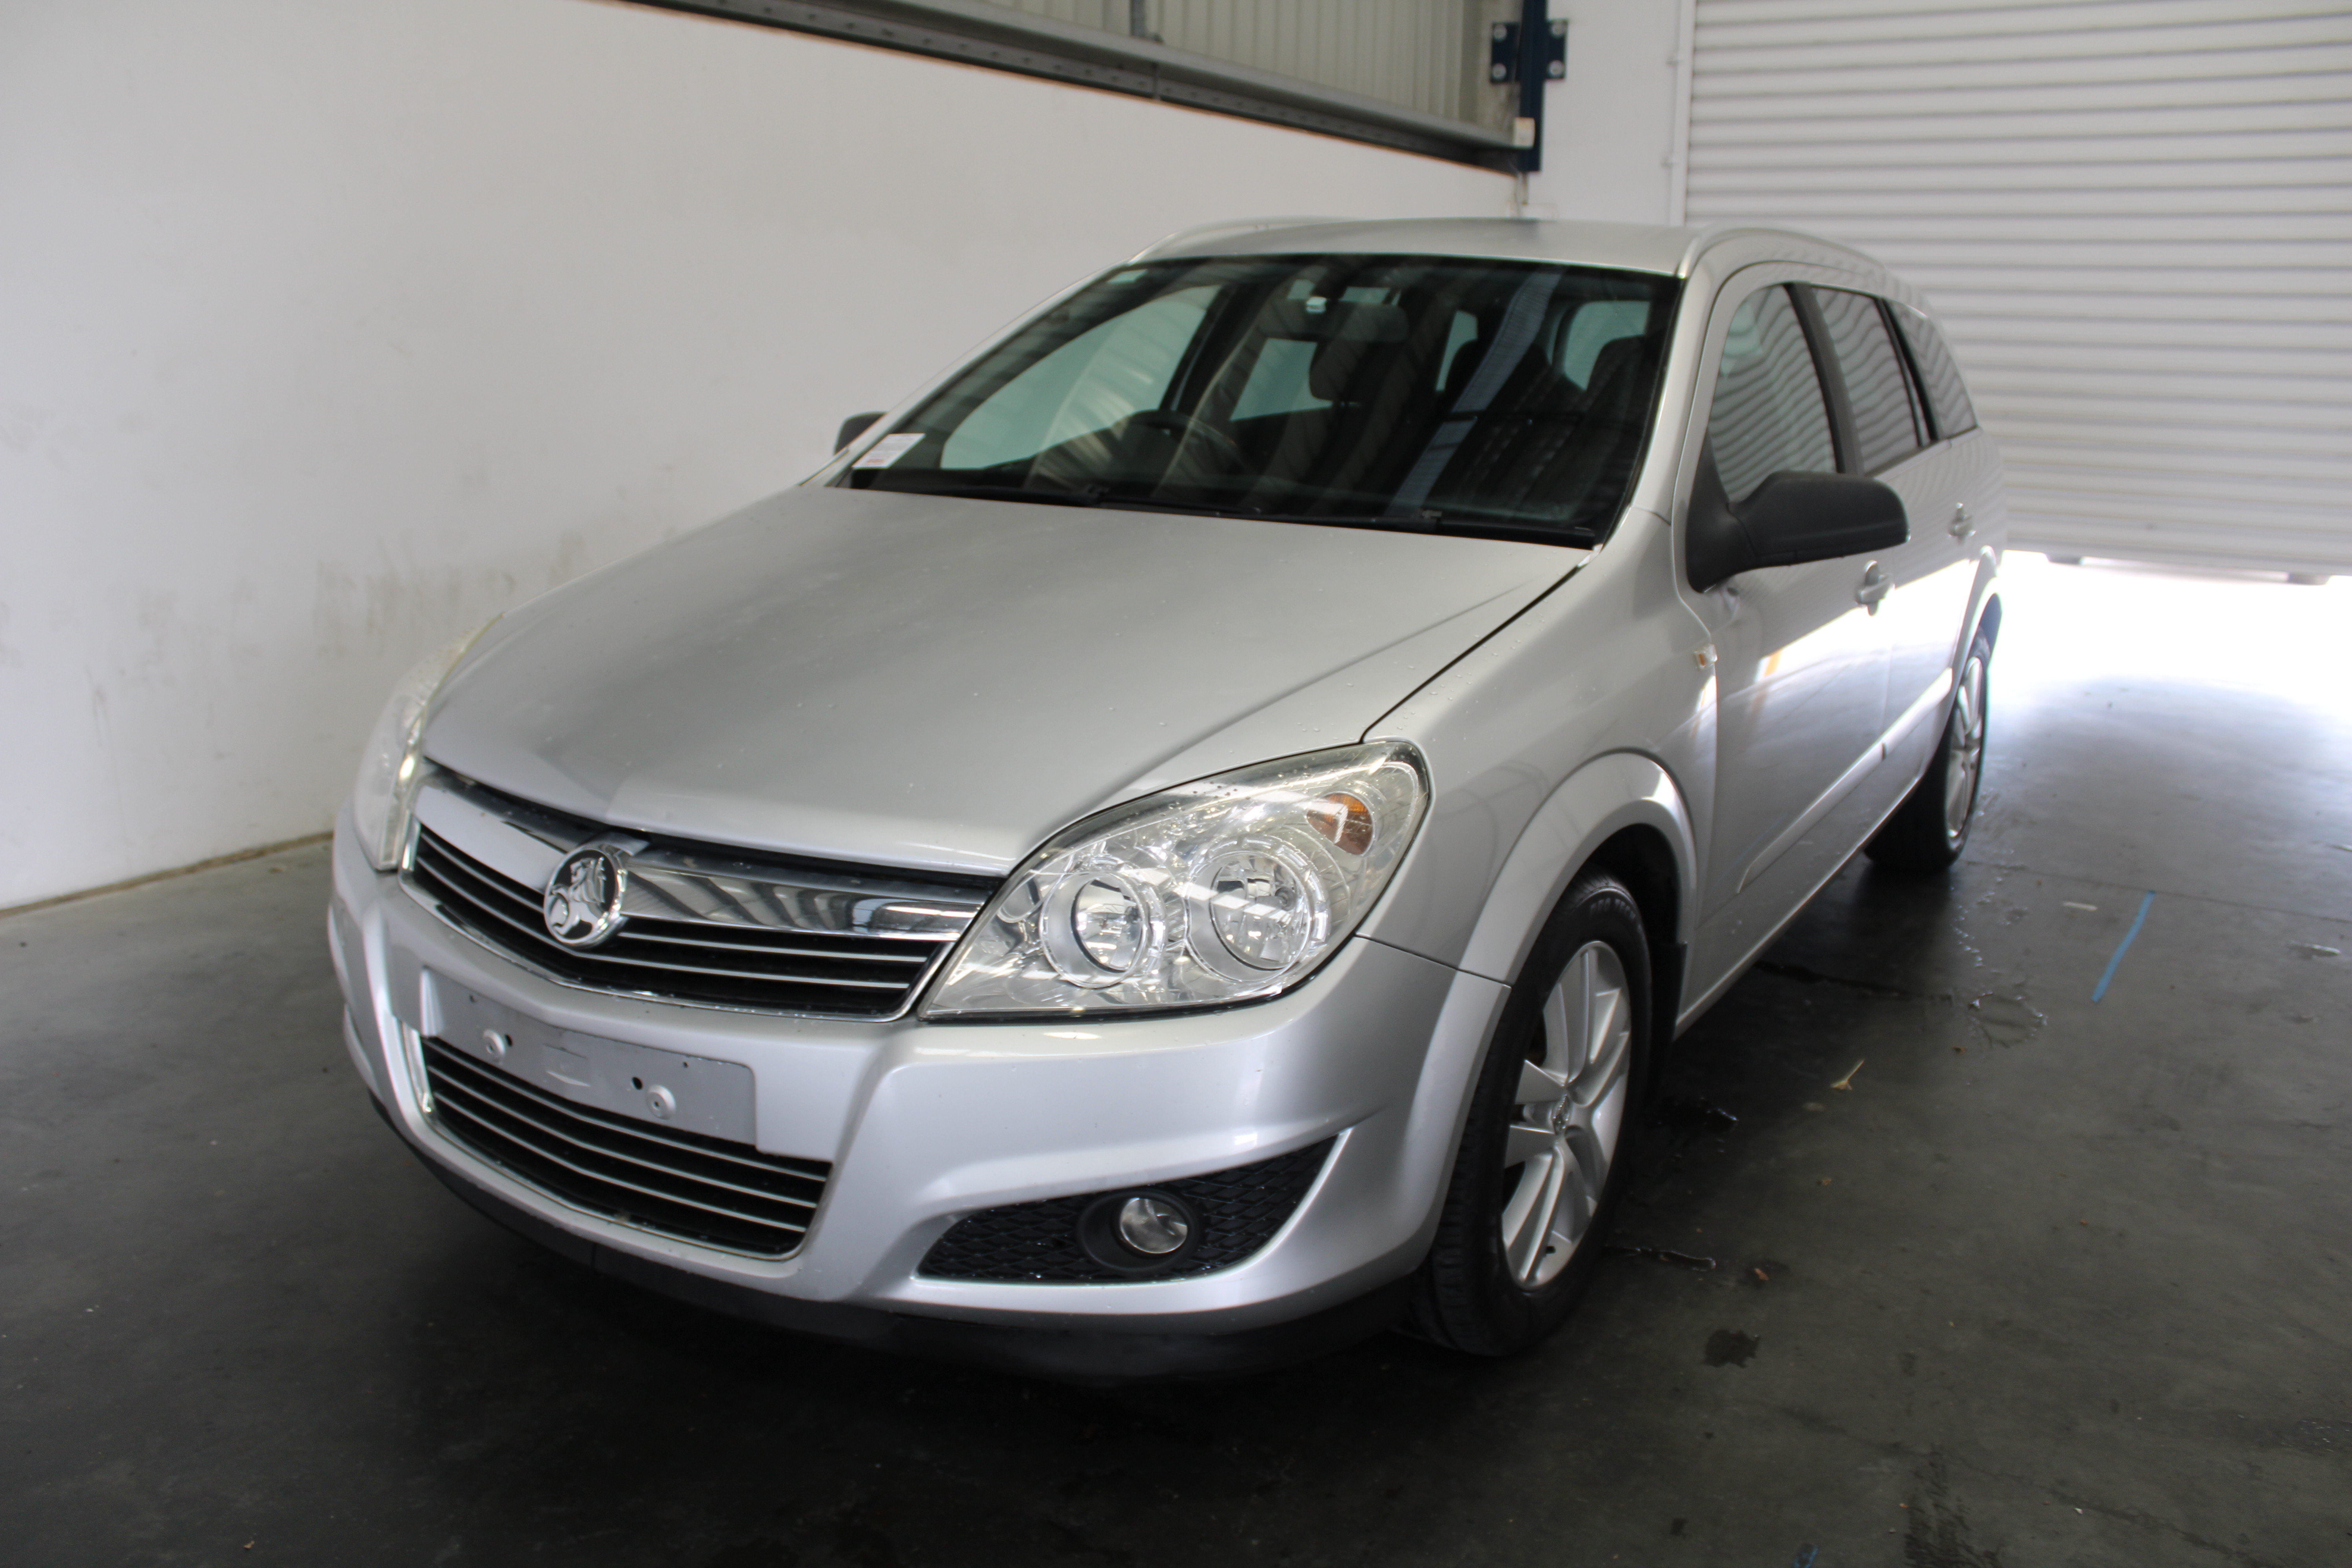 2008 Holden Astra CDTI AH Turbo Diesel Automatic Wagon